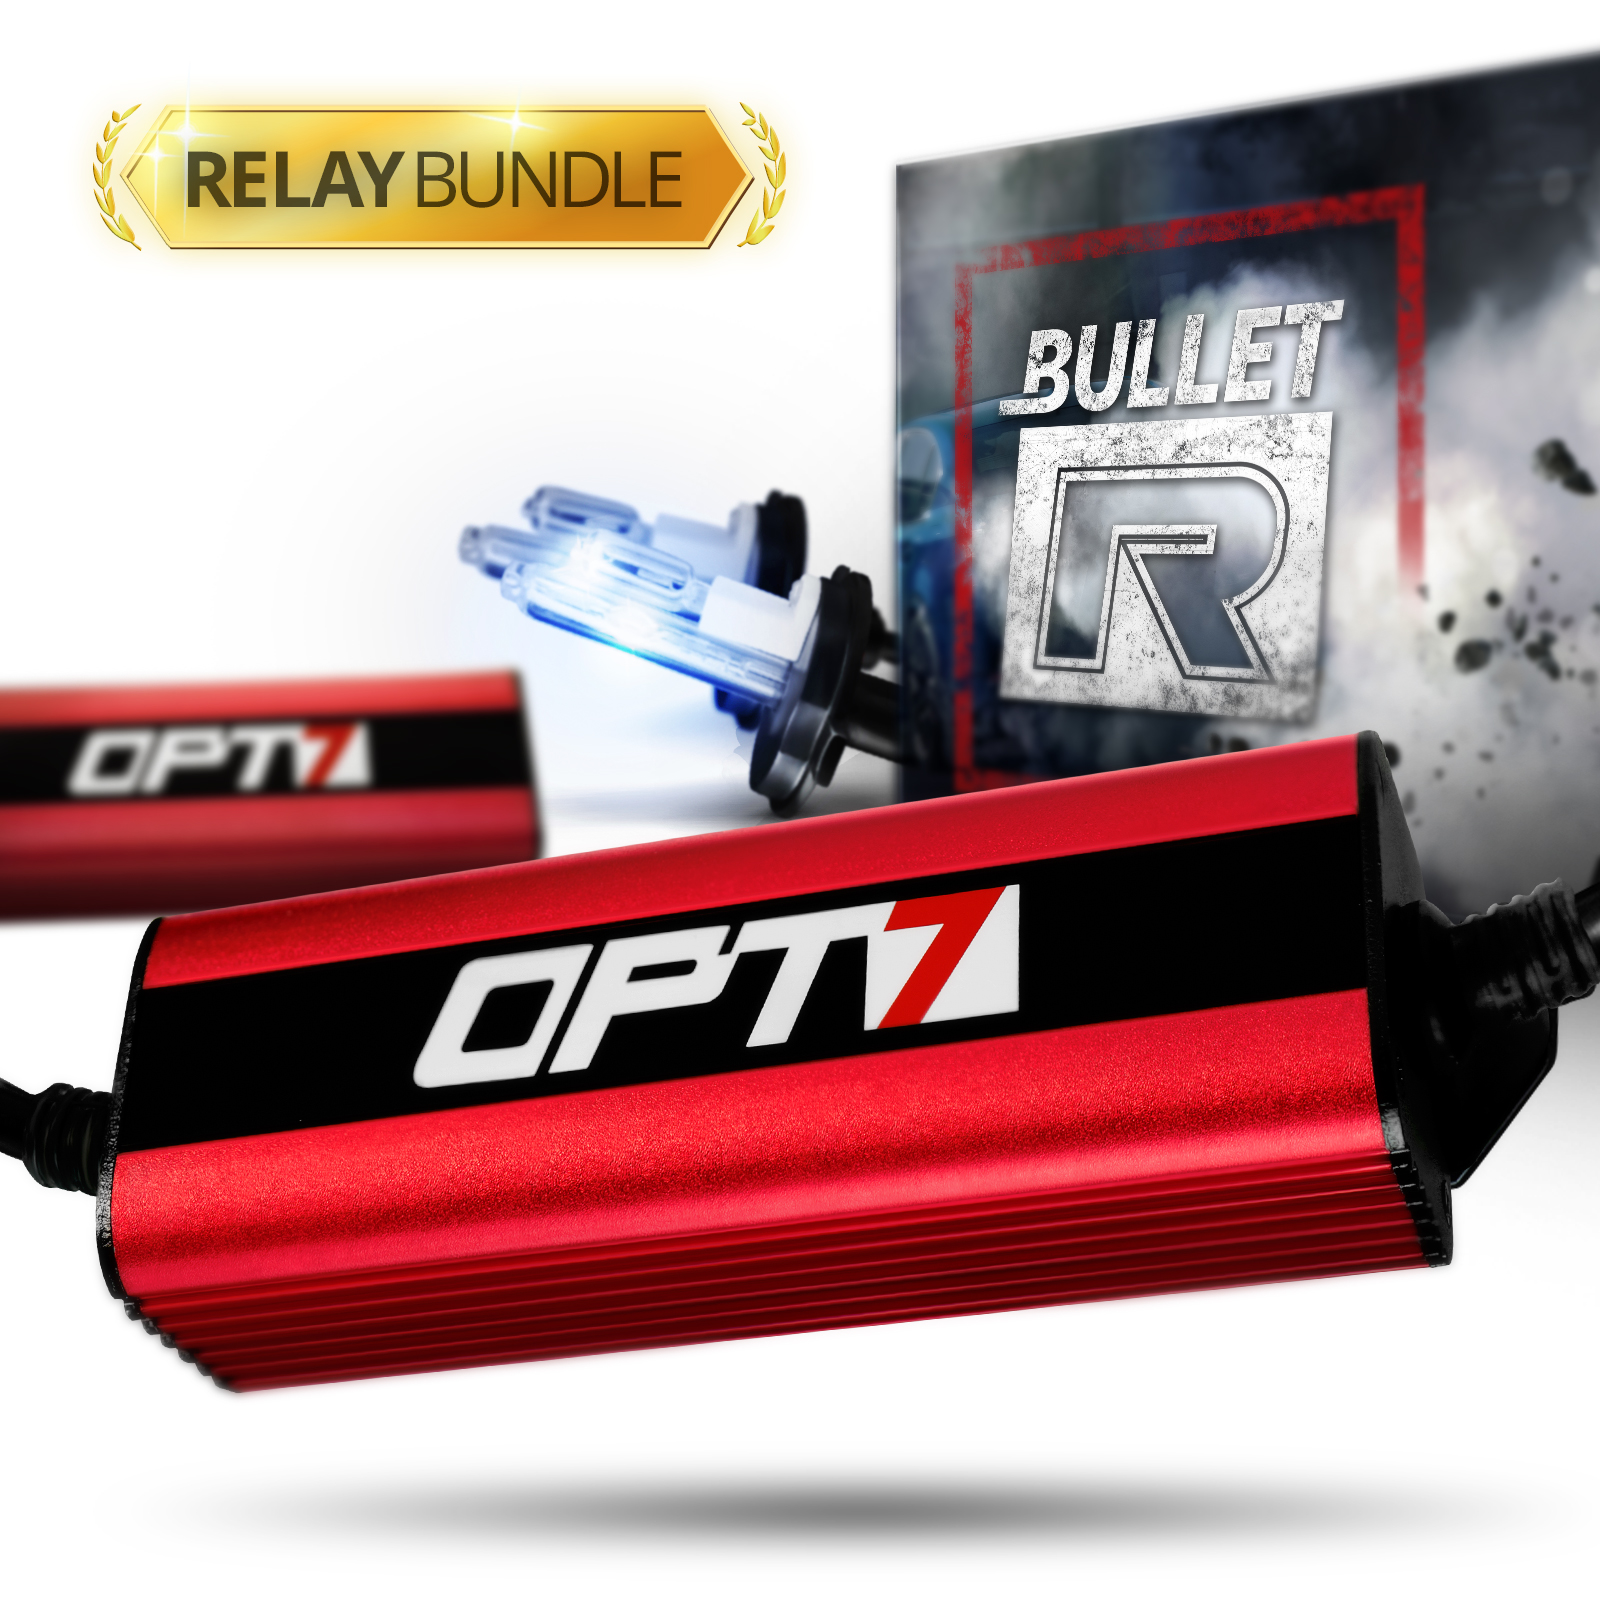 Bullet-R H11 (H8, H9, H16) HID Kit - Relay Bundle - All Bulb Sizes and Colors - 2 Yr Warranty [6000K Lightning Blue Xenon Light]